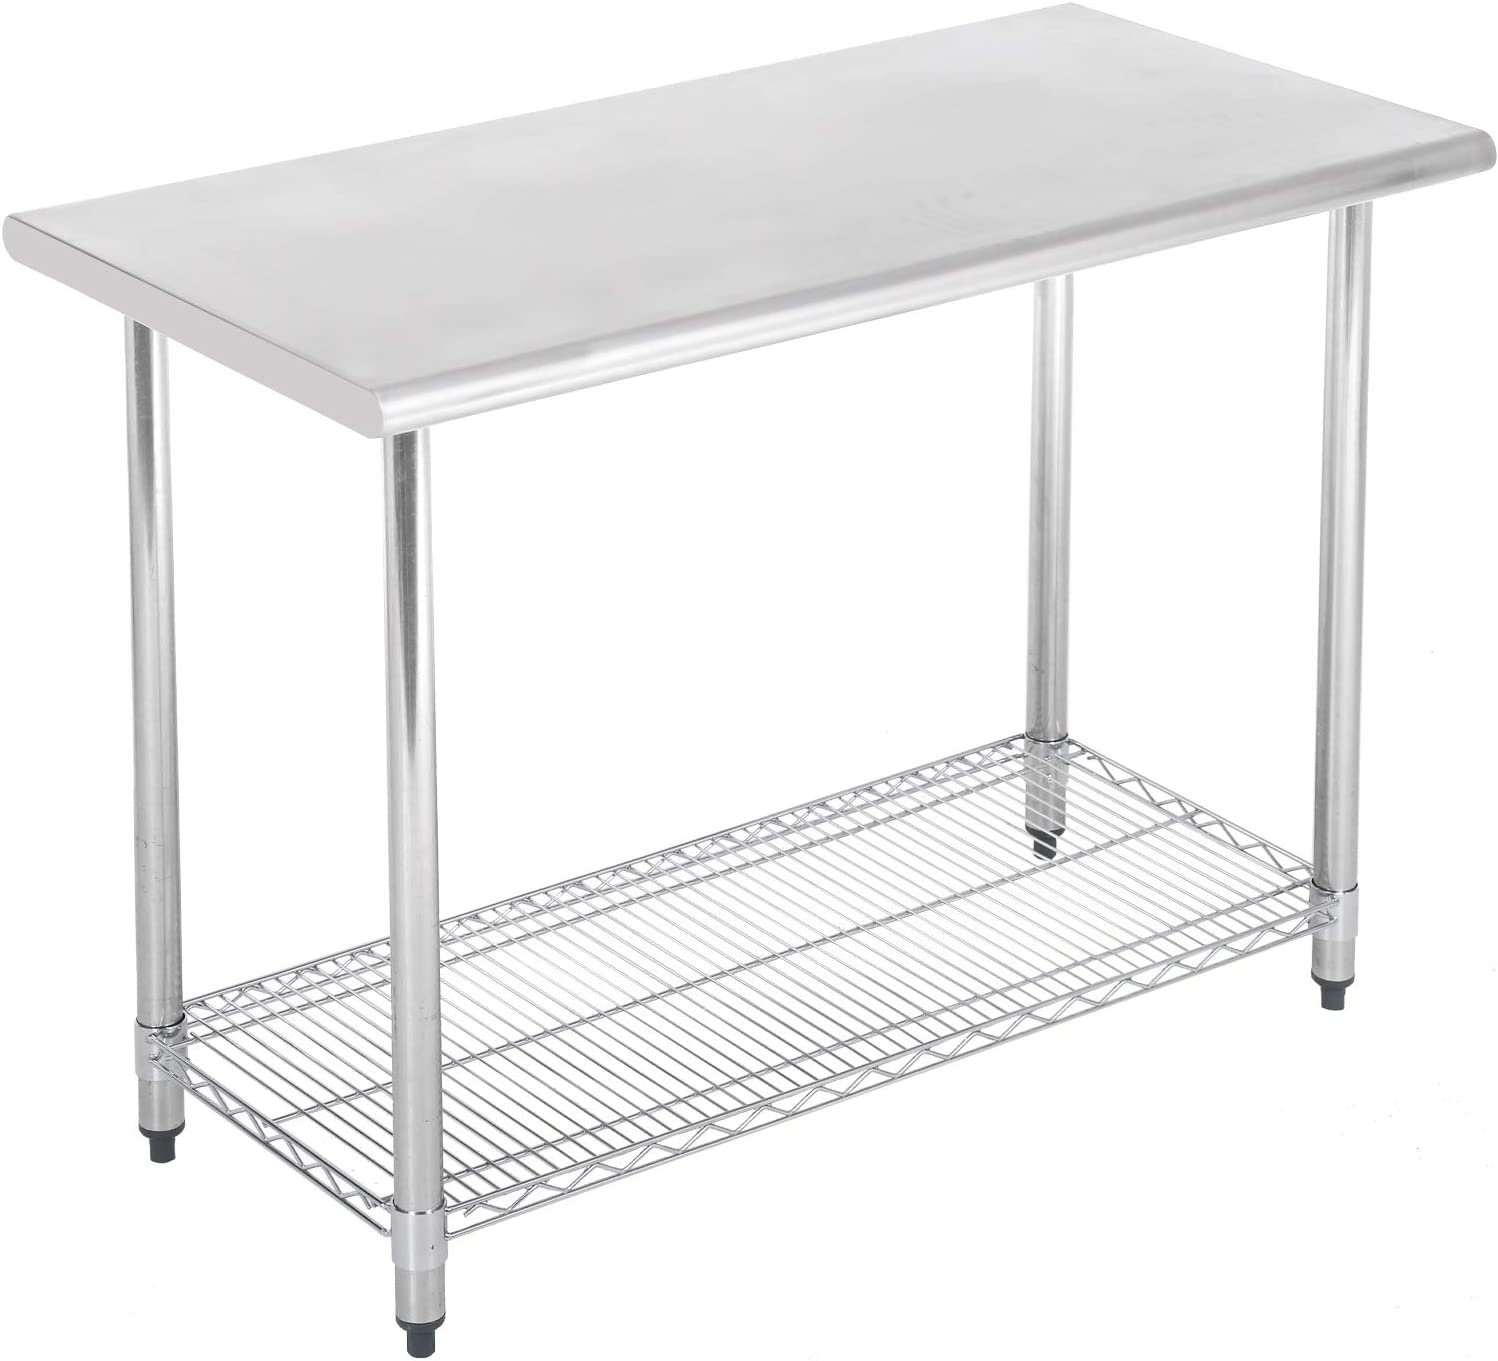 Commercial Prep Kitchen Work Table Stainless Steel Metal Table With Adjustable Foot Chrome Lower Shelf NSF Scratch Resistent and Antirust, 24 X 48 Inches